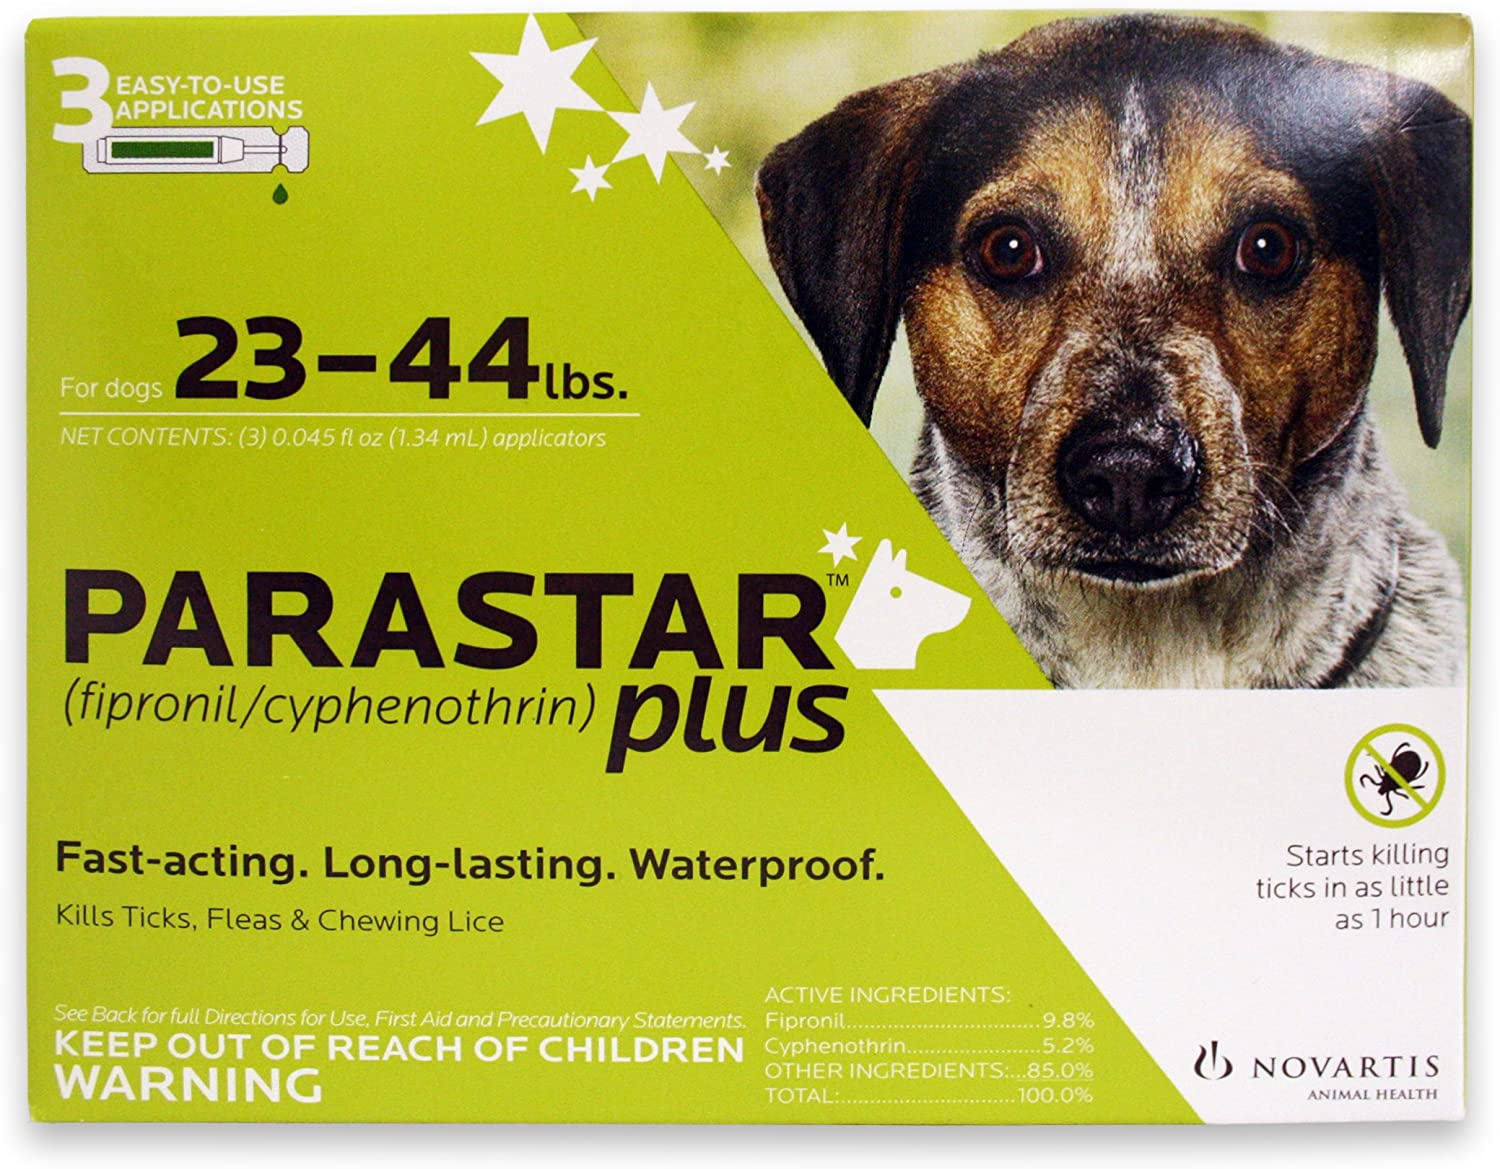 Novartis Parastar Limited time trial price Plus Flea and Max 52% OFF Tick Control 23 to 44- Dogs for